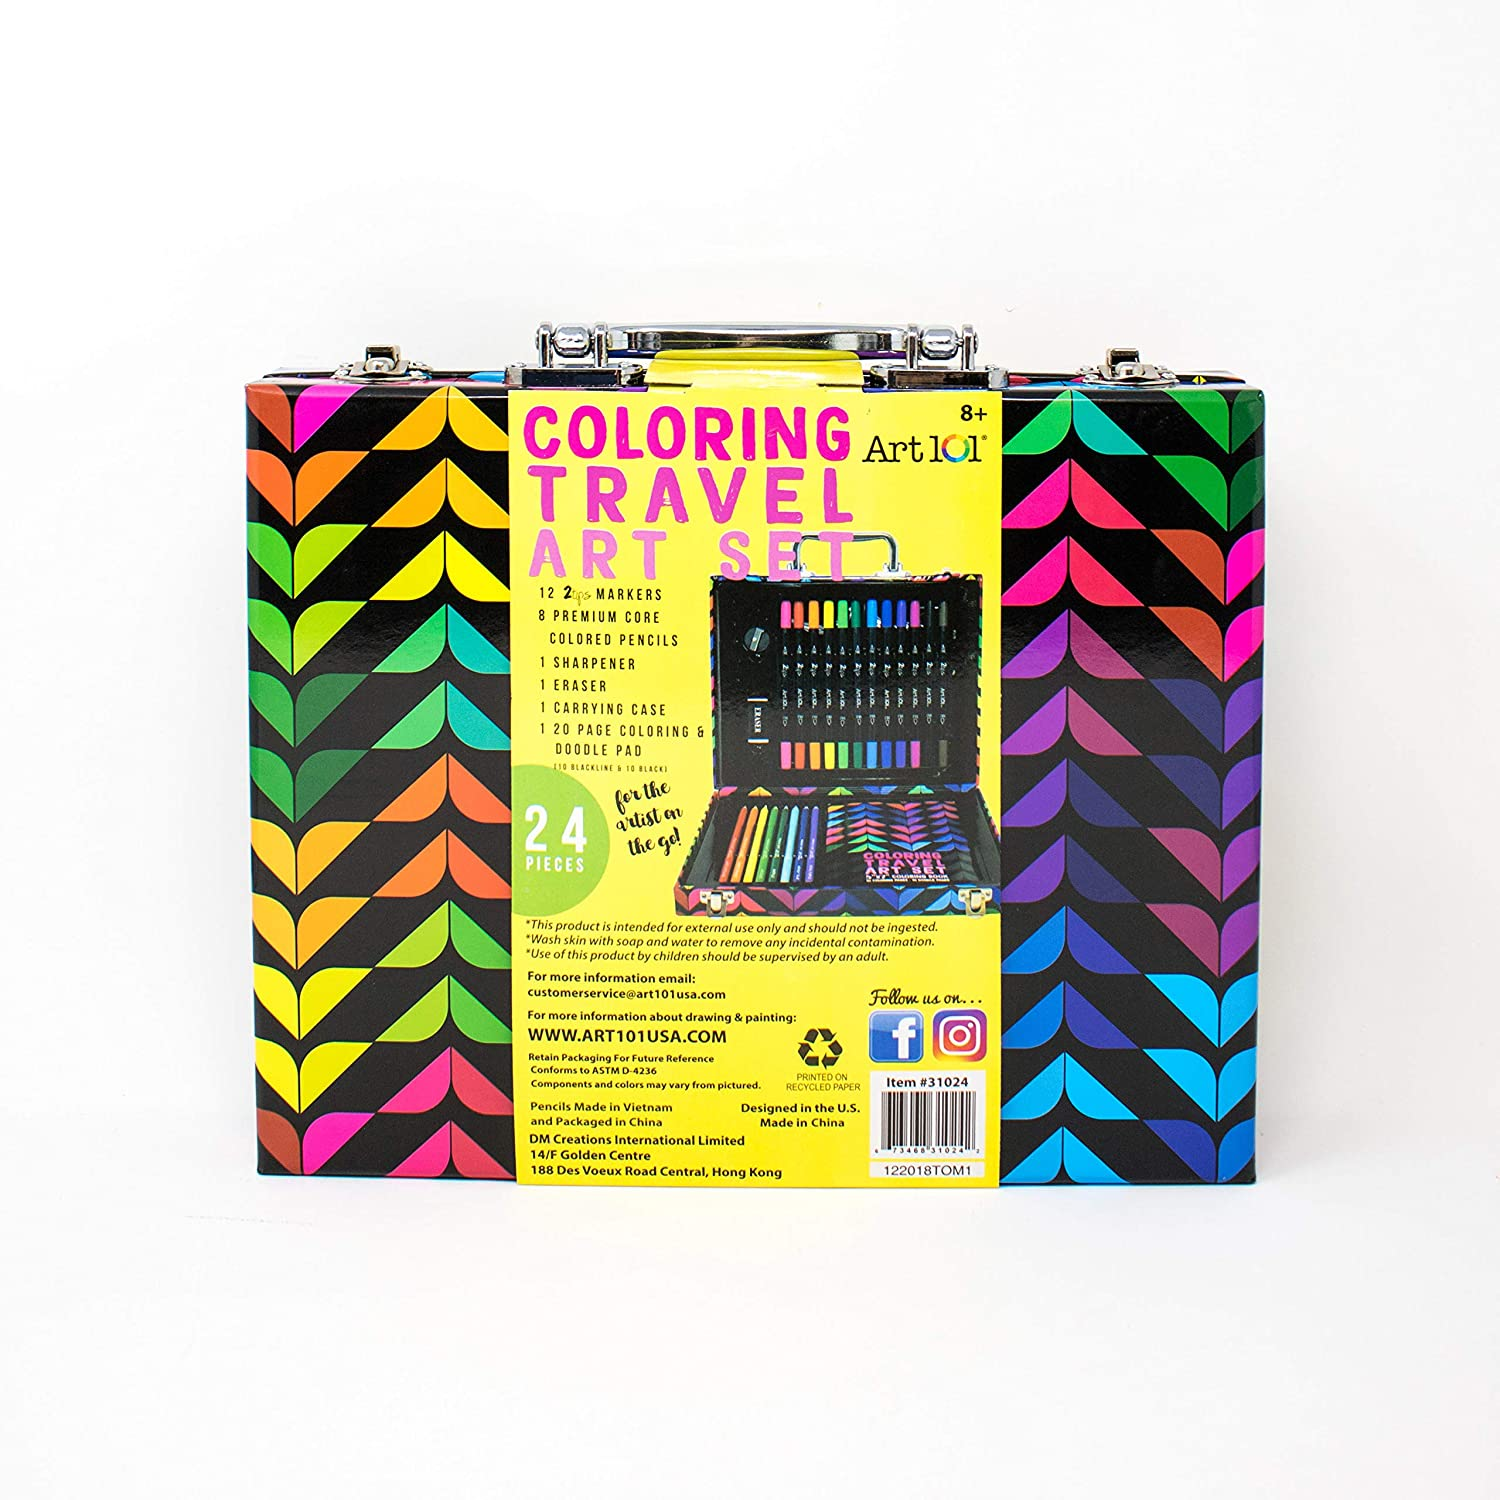 Multi Art 101 Coloring Travel Art Set with 24 Pieces in a Colorful Carrying Case